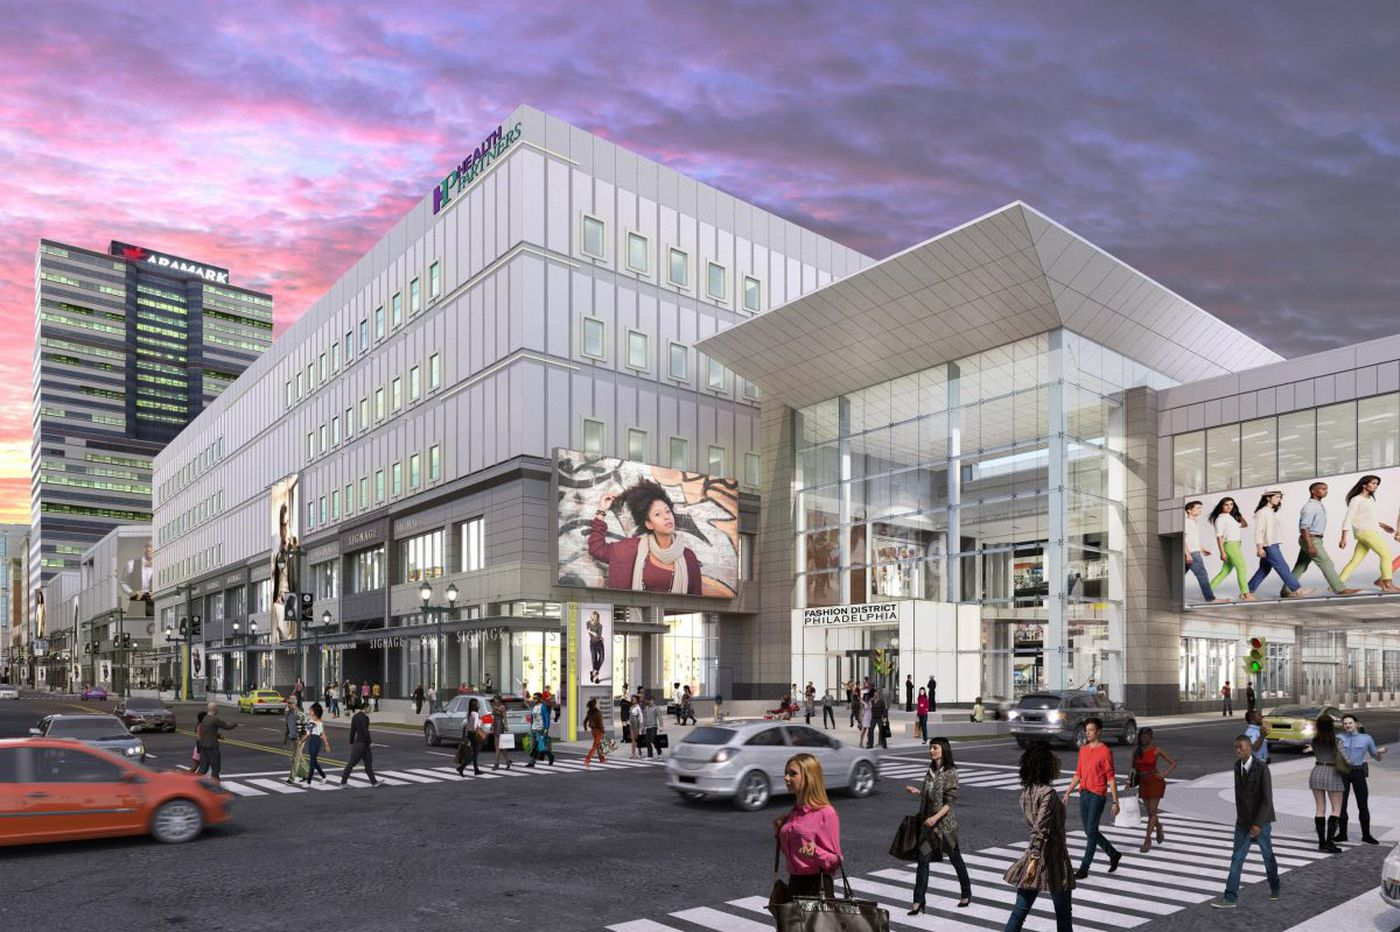 American Eagle, Hollister among new stores announced for Fashion District, the former Gallery mall